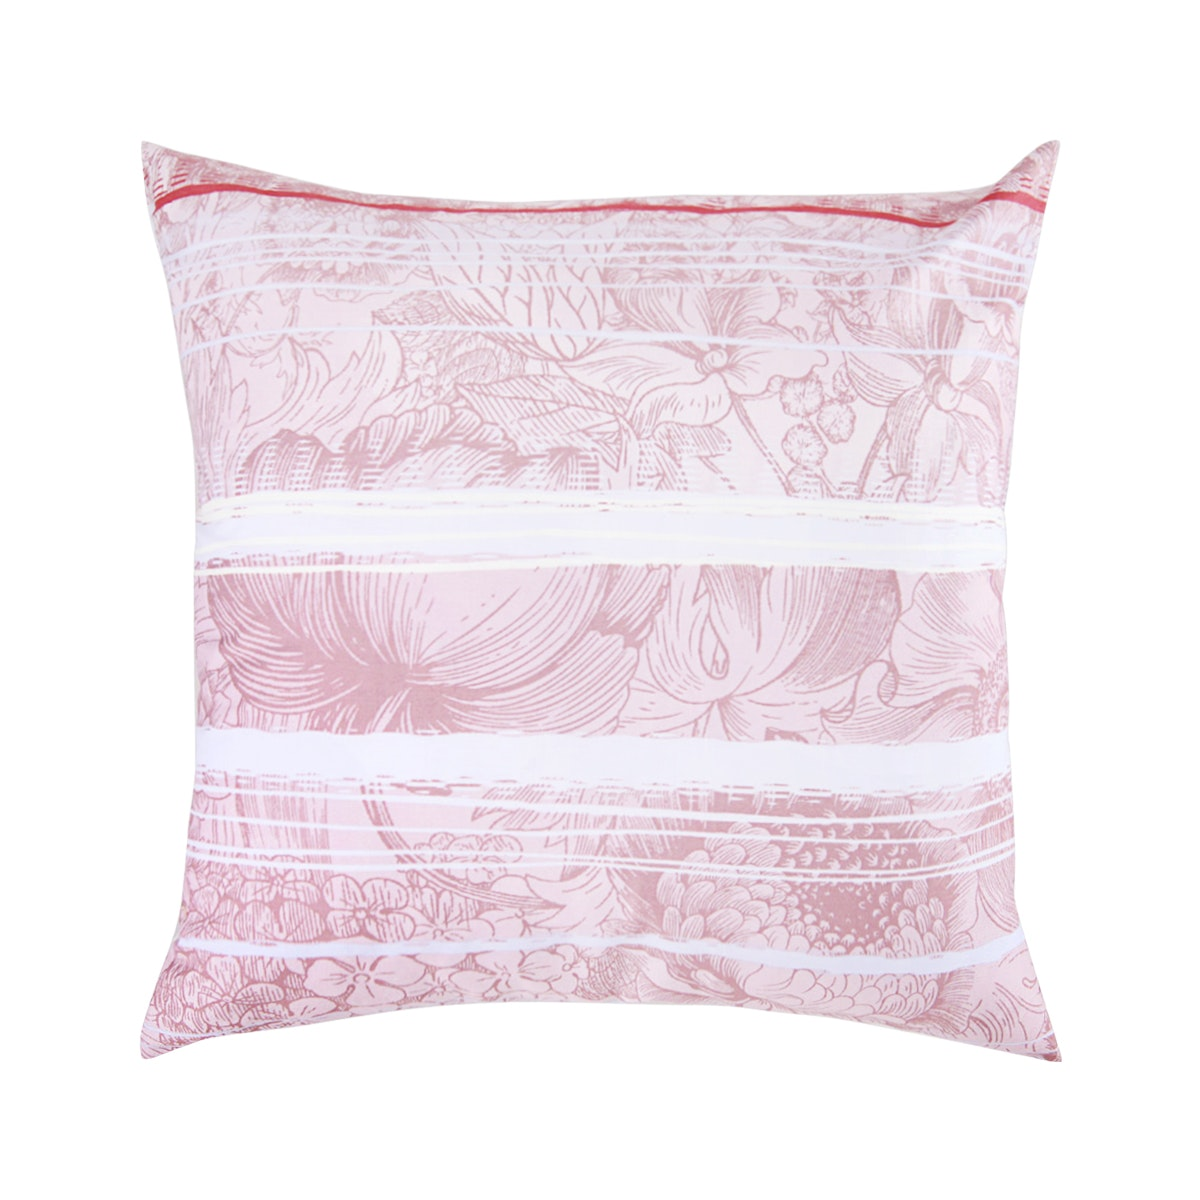 Eolins Cushion Cover Deluxe JSPS5004 50x50cm